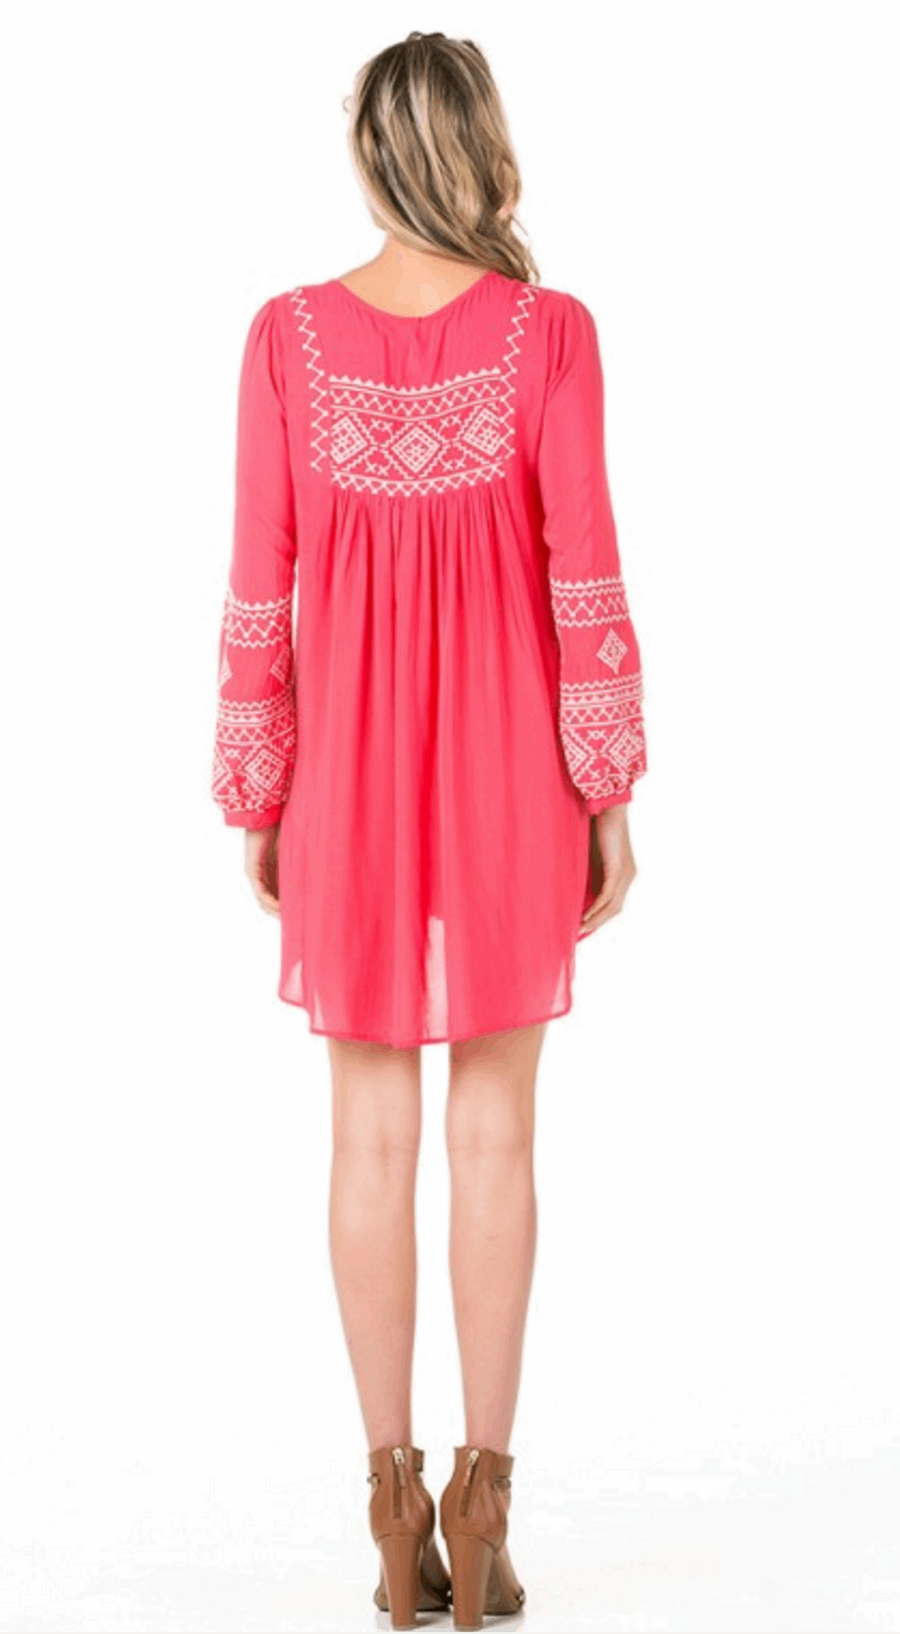 Full Tunic Mini Dress with Bishop Sleeves in Coral from Monoreno | Beauty Cafe - 2